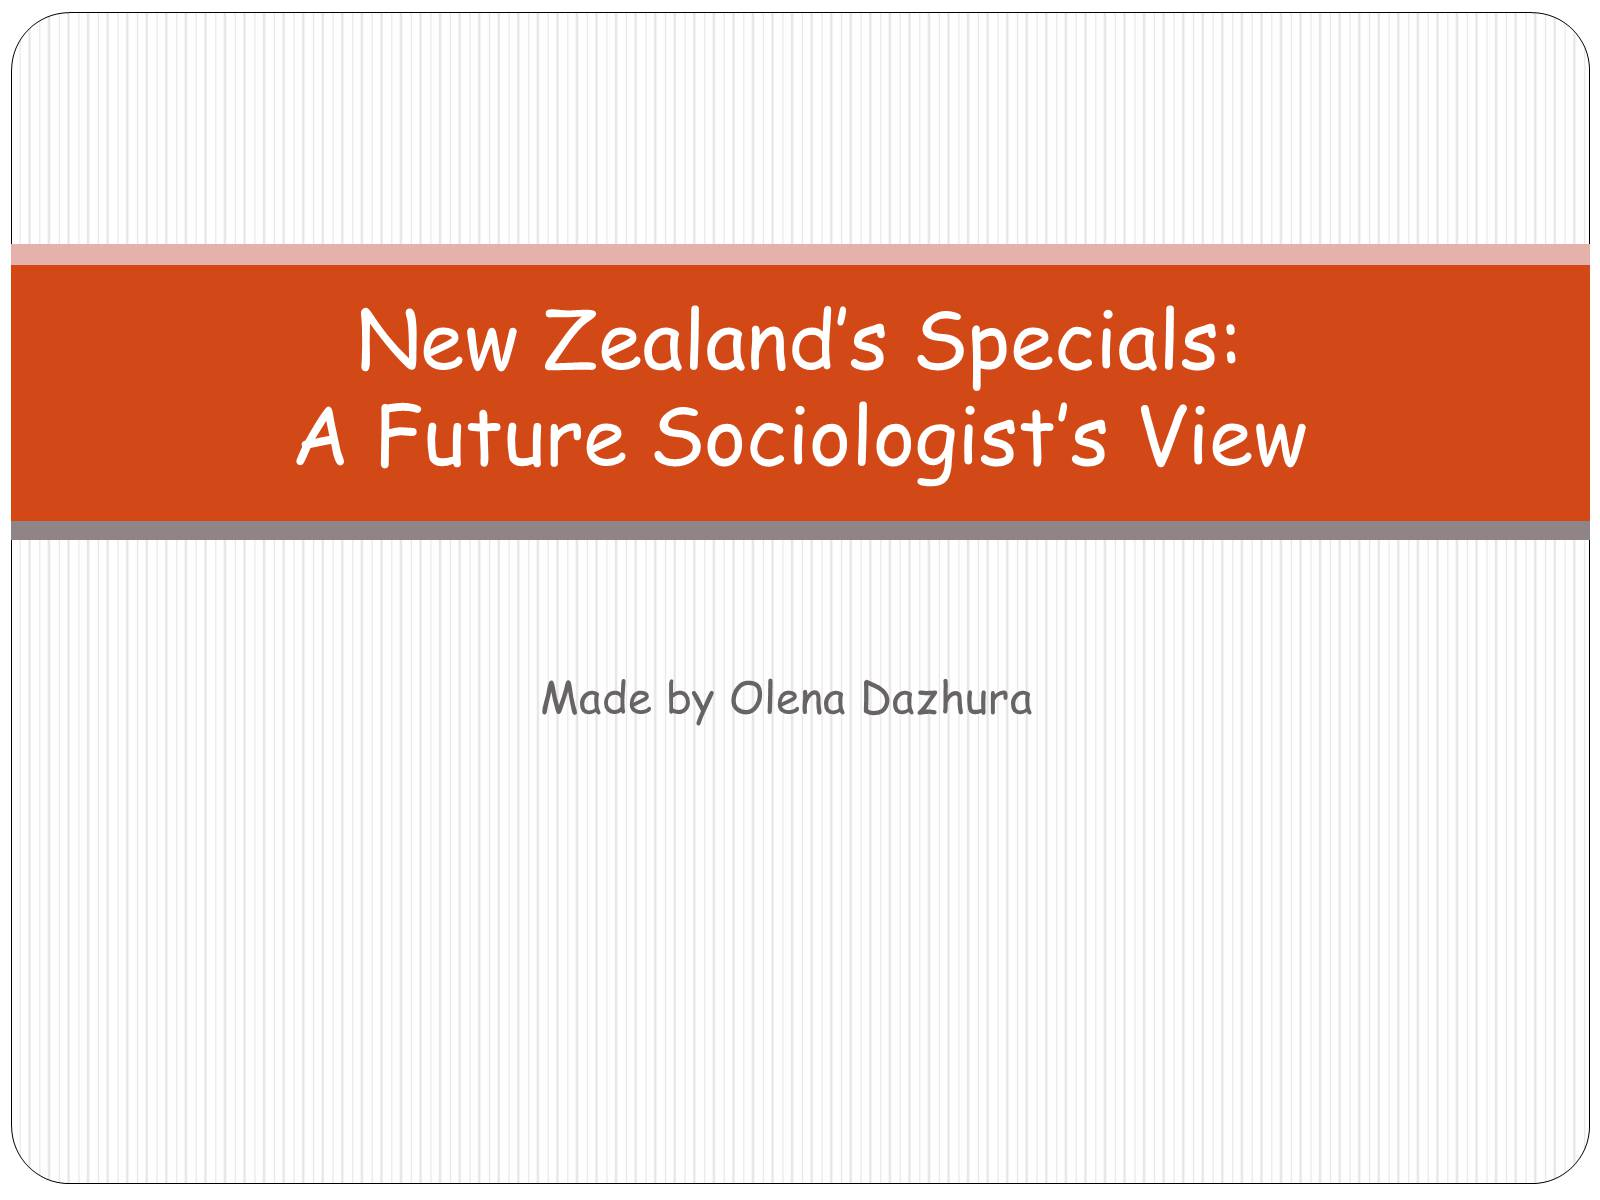 Презентація на тему «New Zealand's Specials: A Future Sociologist's View»